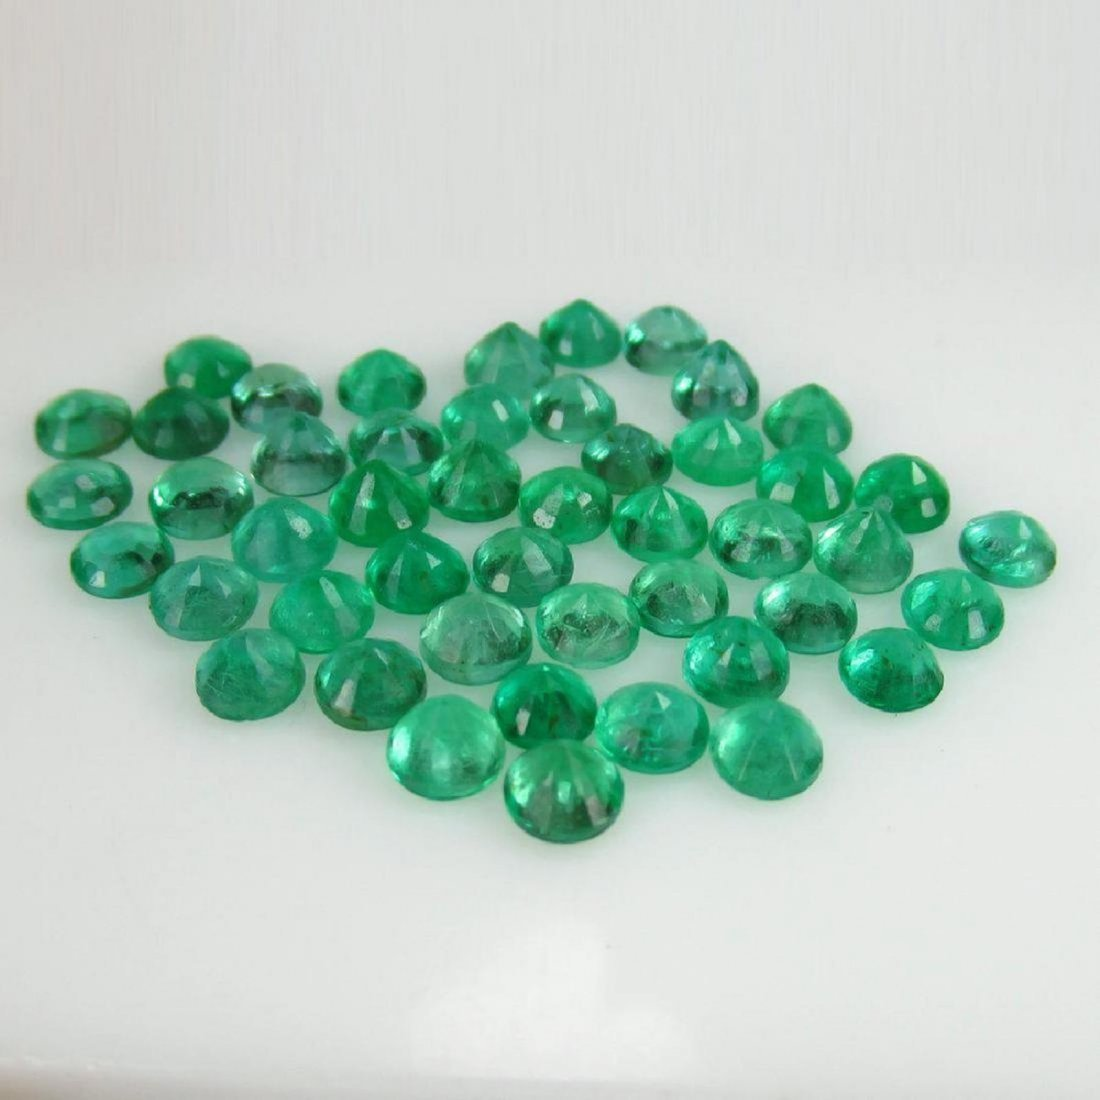 "10.10 Carat 47 Loose Round ""Diamond cut"" Emeralds - 3"